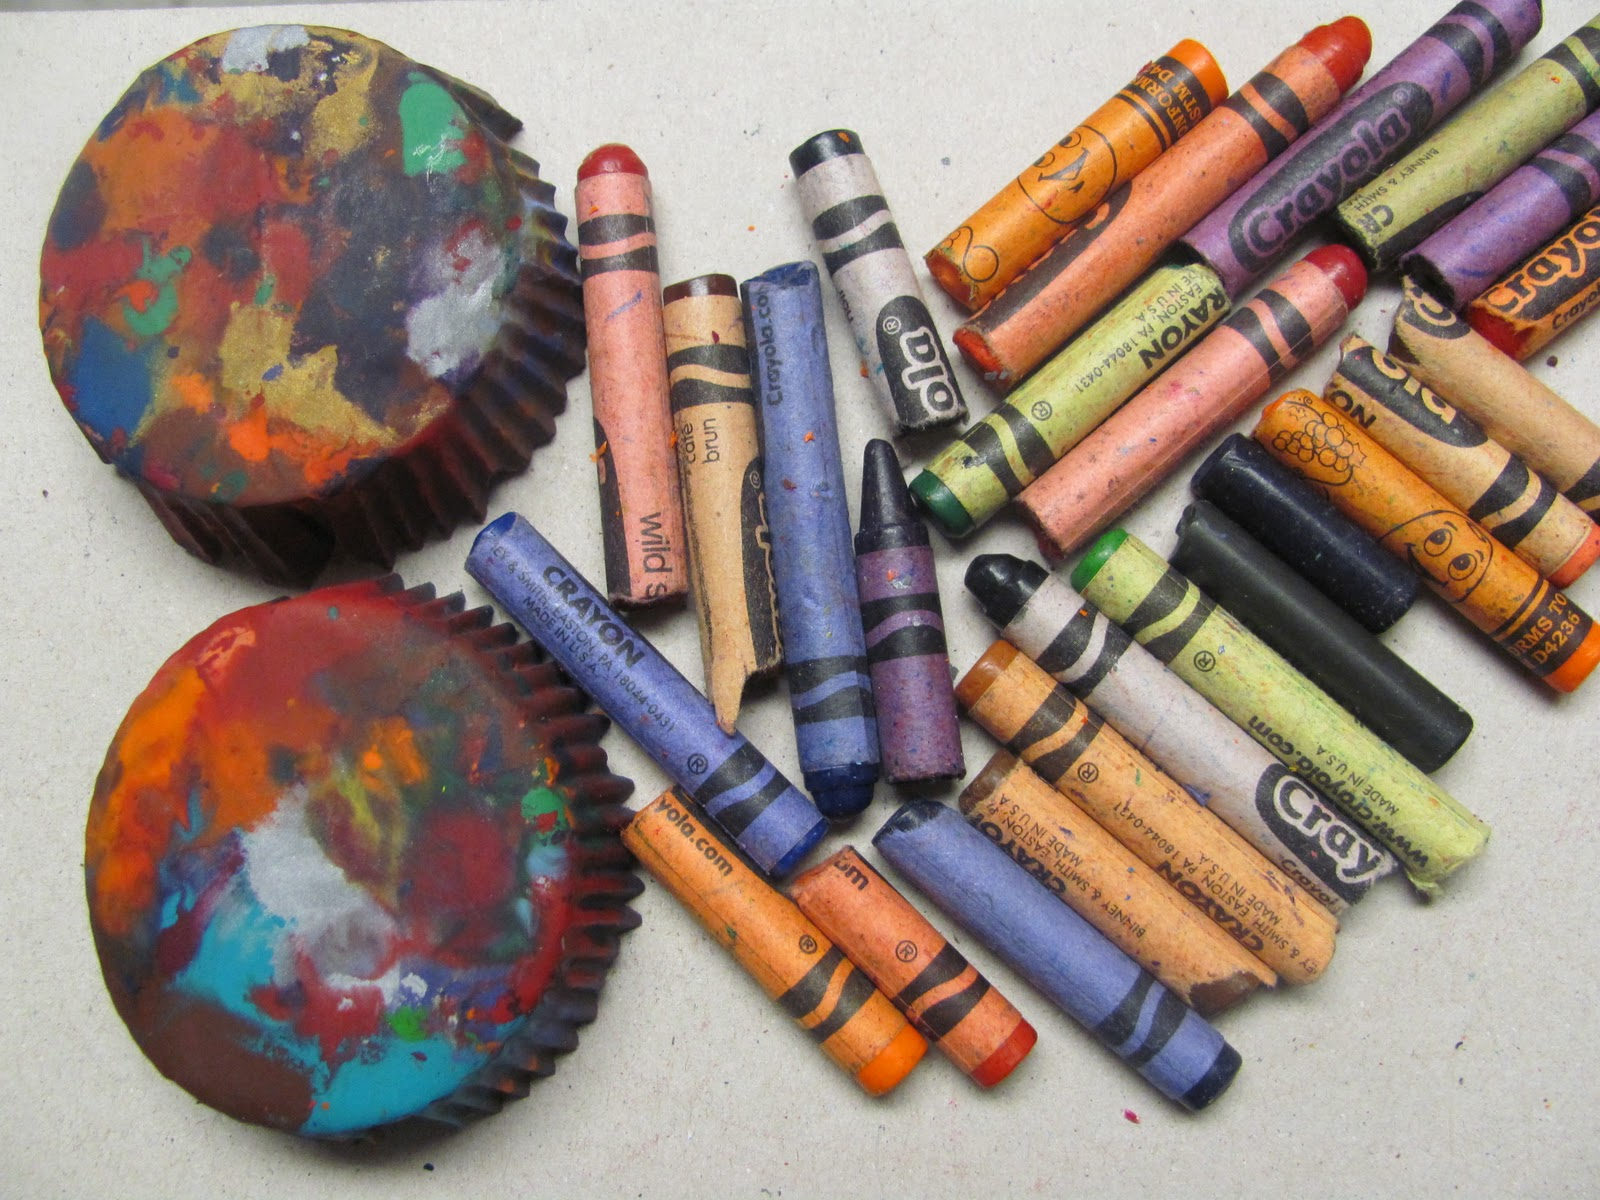 Colormehappy color me happy a green recycling art project - Recycled can art projects ...